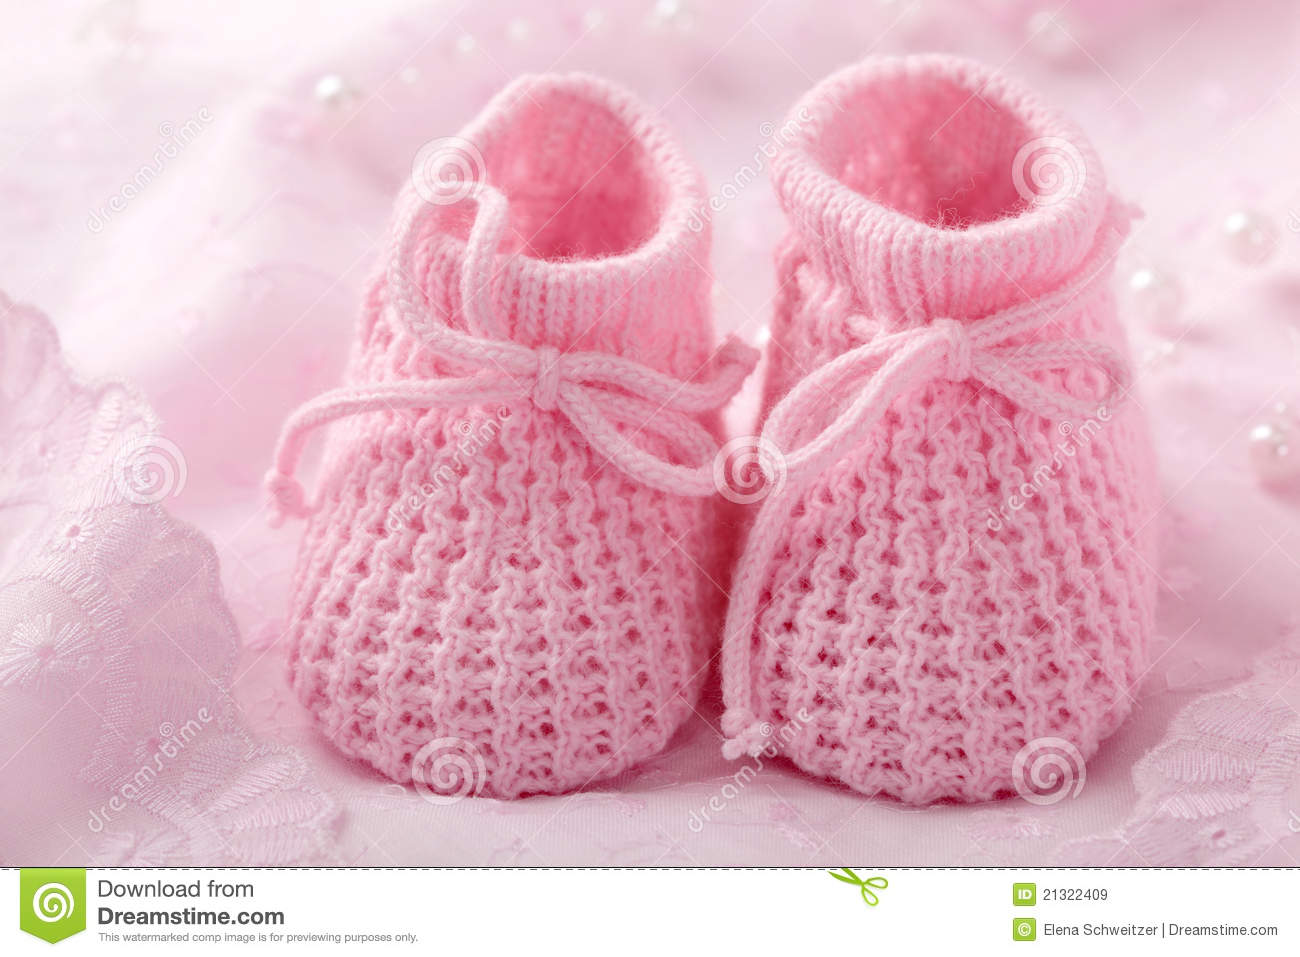 Baby Booties: How to Choose?